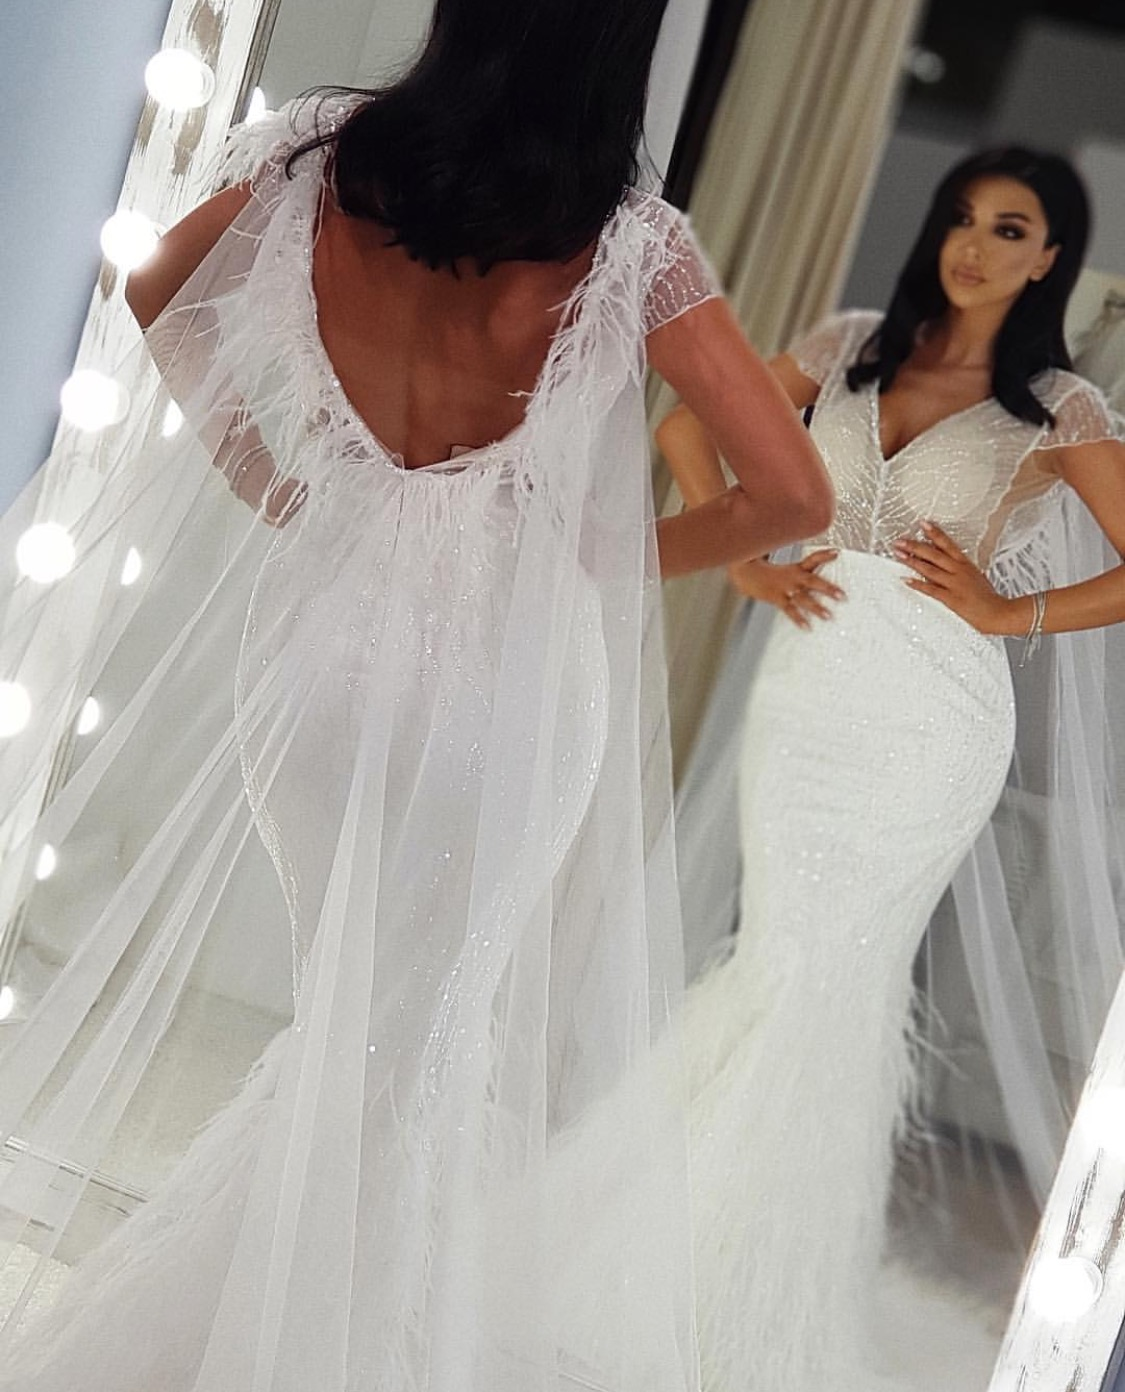 The sexiest wedding dress ever